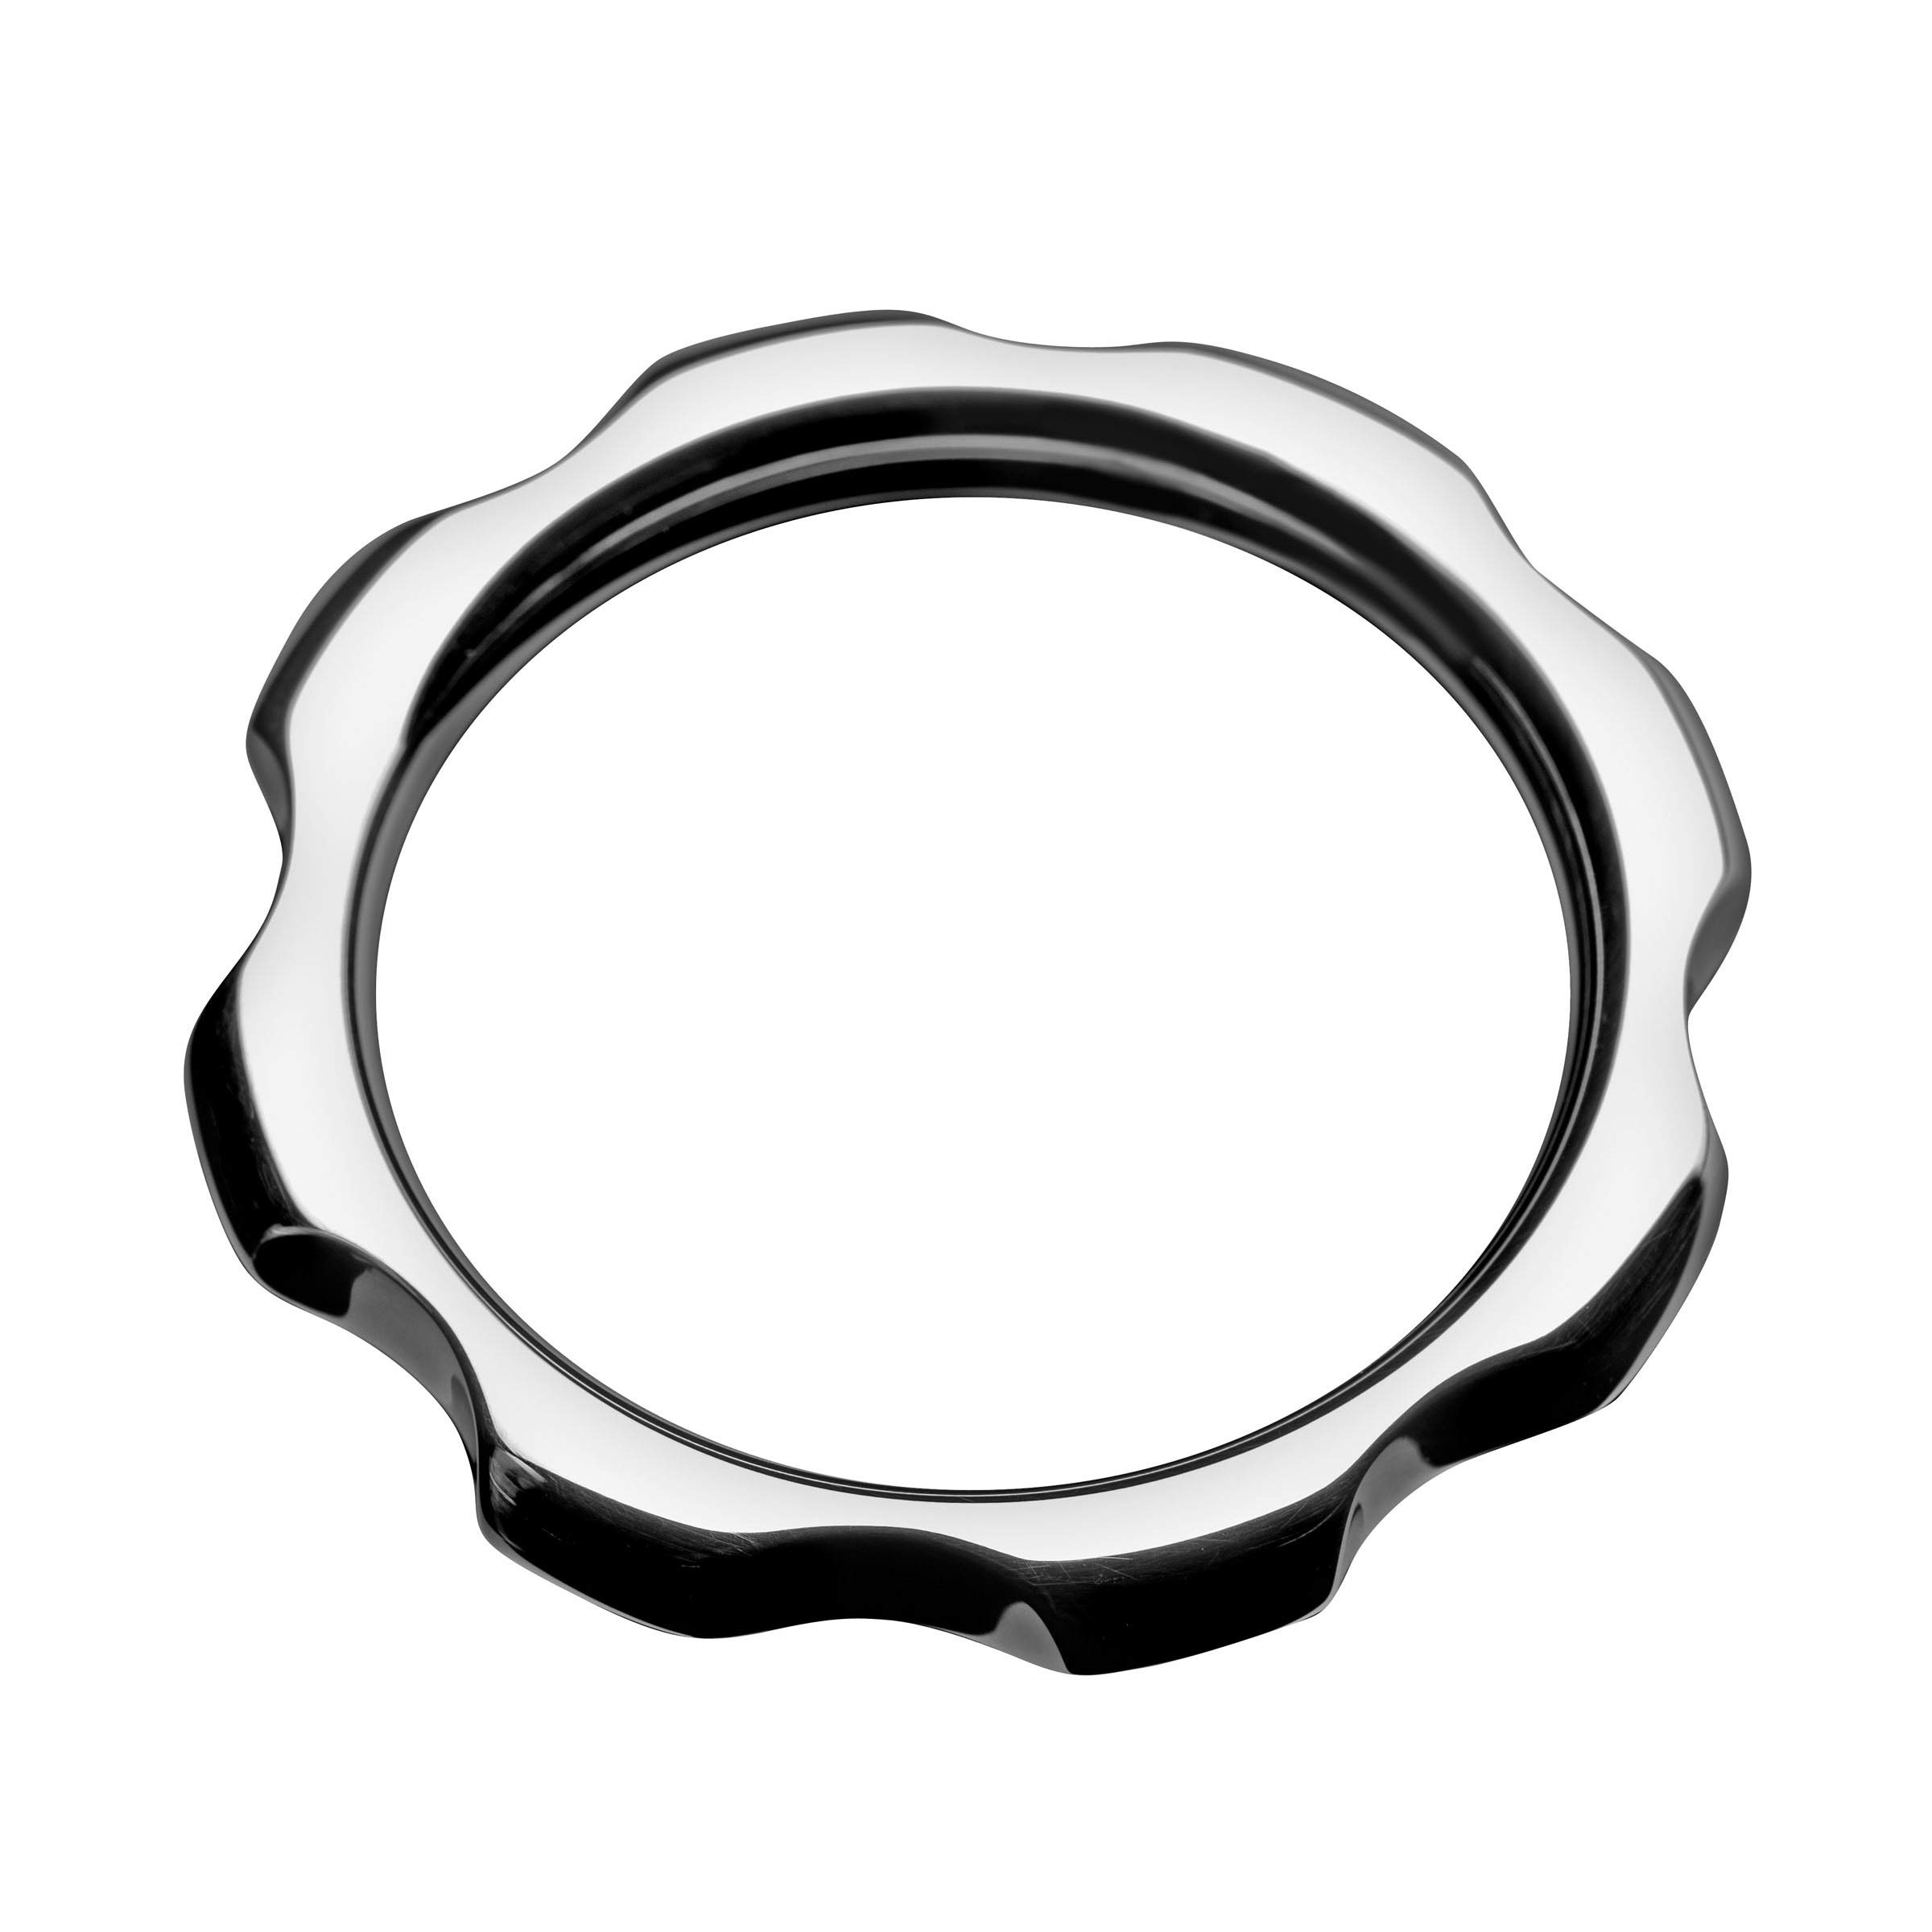 Master Series Gear Head Metal Cock Ring, 1.75 Inch by Master Series